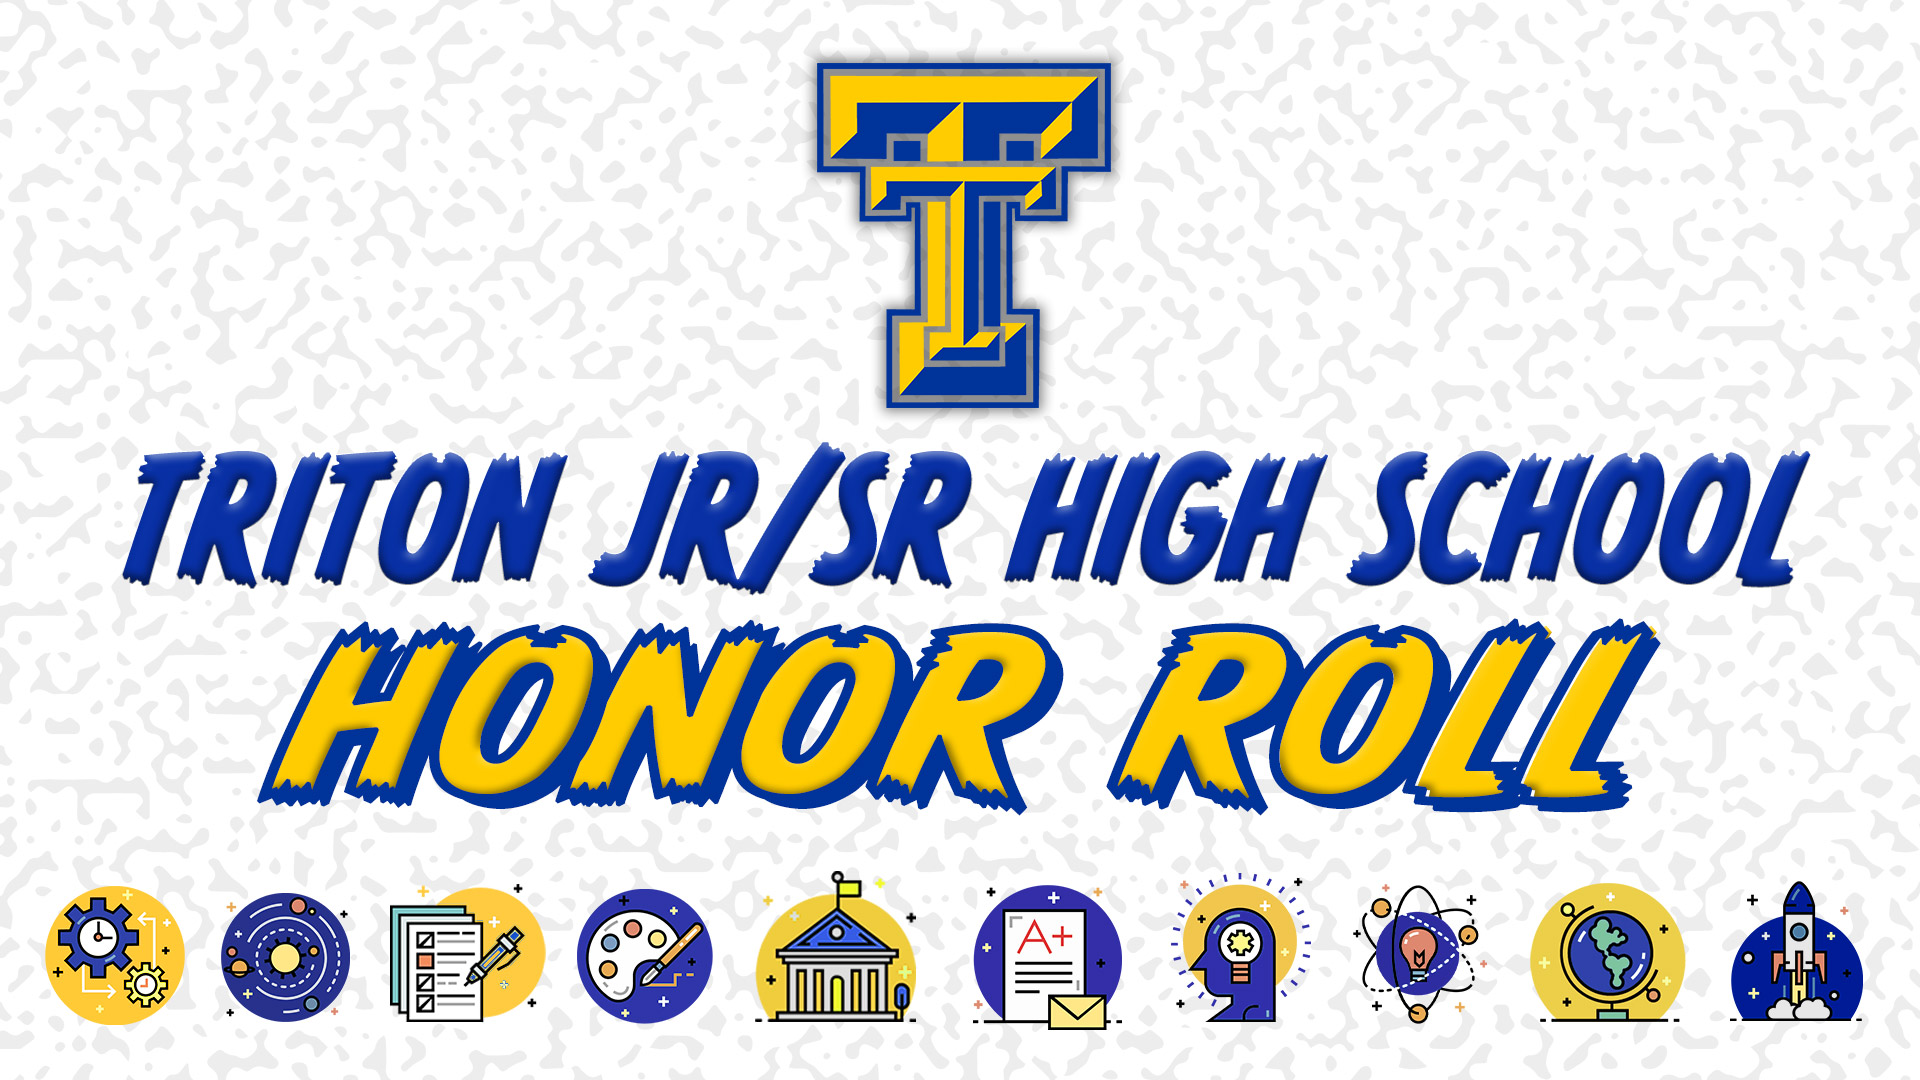 TJSHS Honor Roll | 2020-2021 | Term 2 Grading Period 2 and Final